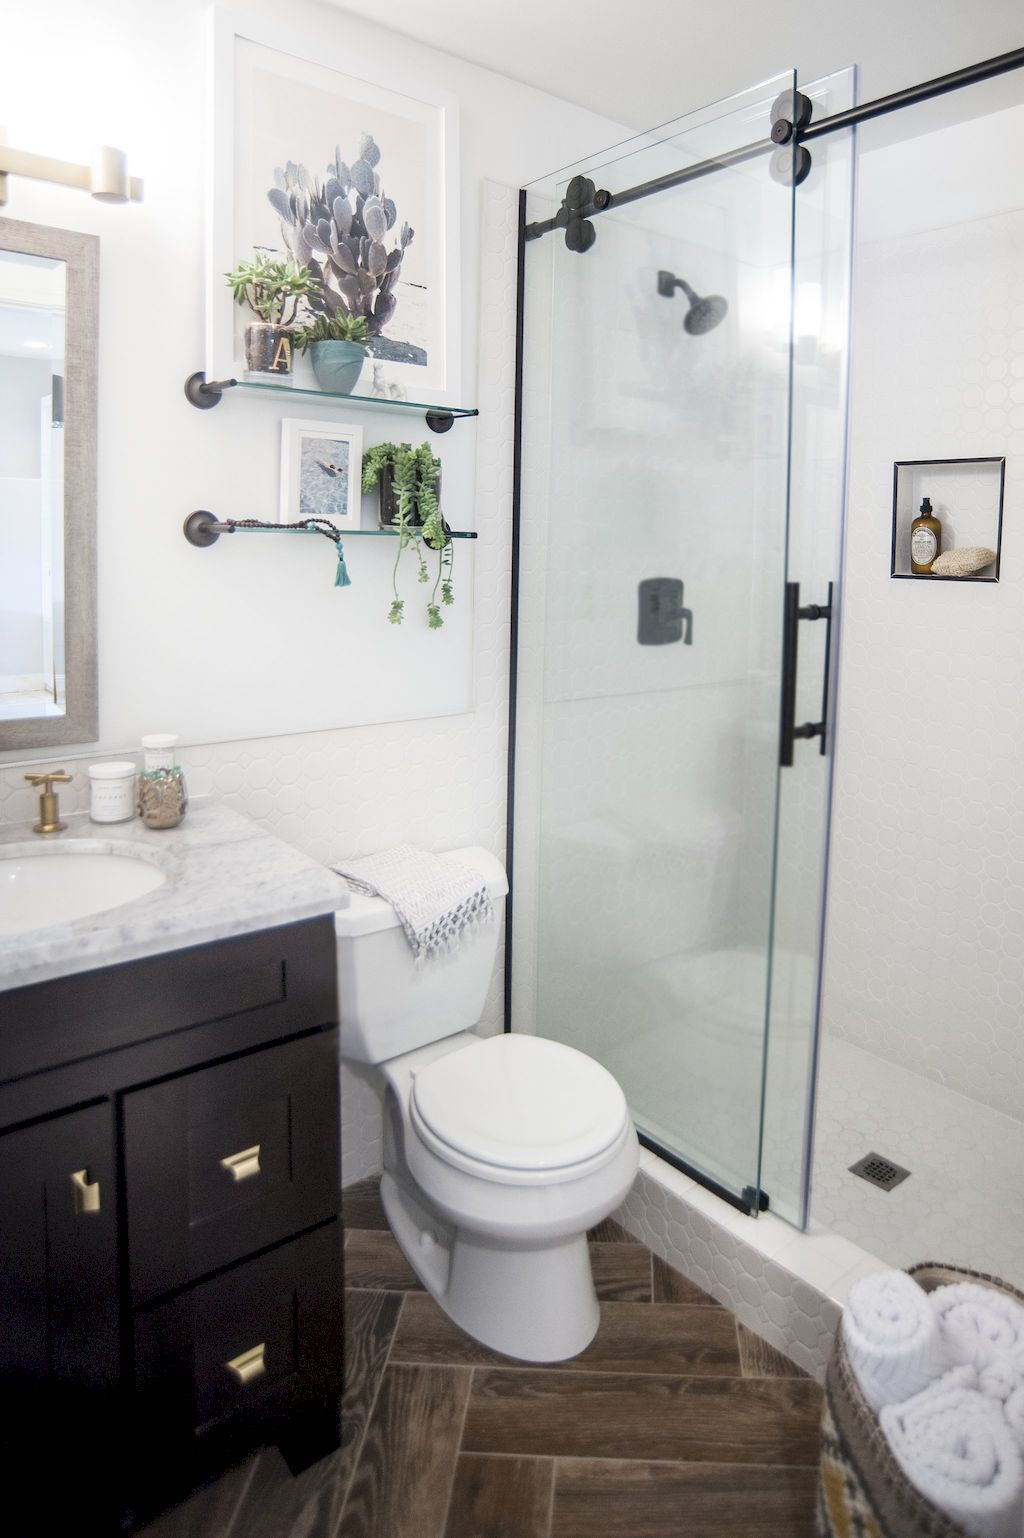 Small Bathroom Remodel Ideas With Shower Only Remodeling Bathroom Design Designs Plans Small Pictures Ideas Only Floor Marvelous Master Photo Dimensions Space B Small Bathroom Renovations Small Master Bathroom Bathroom Remodel